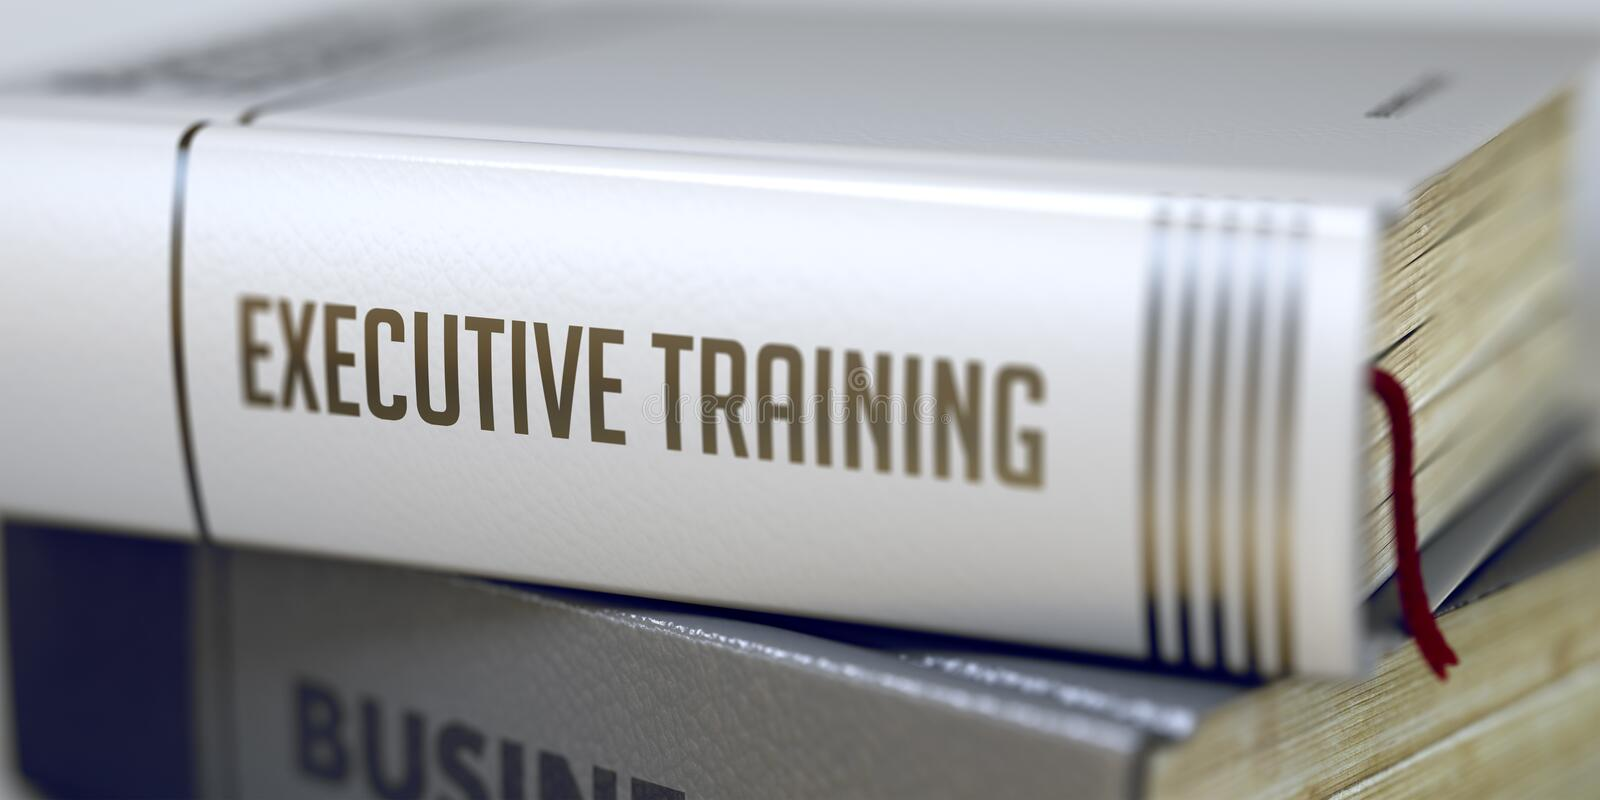 Executive Training - Business Book Title. 3D. stock photo